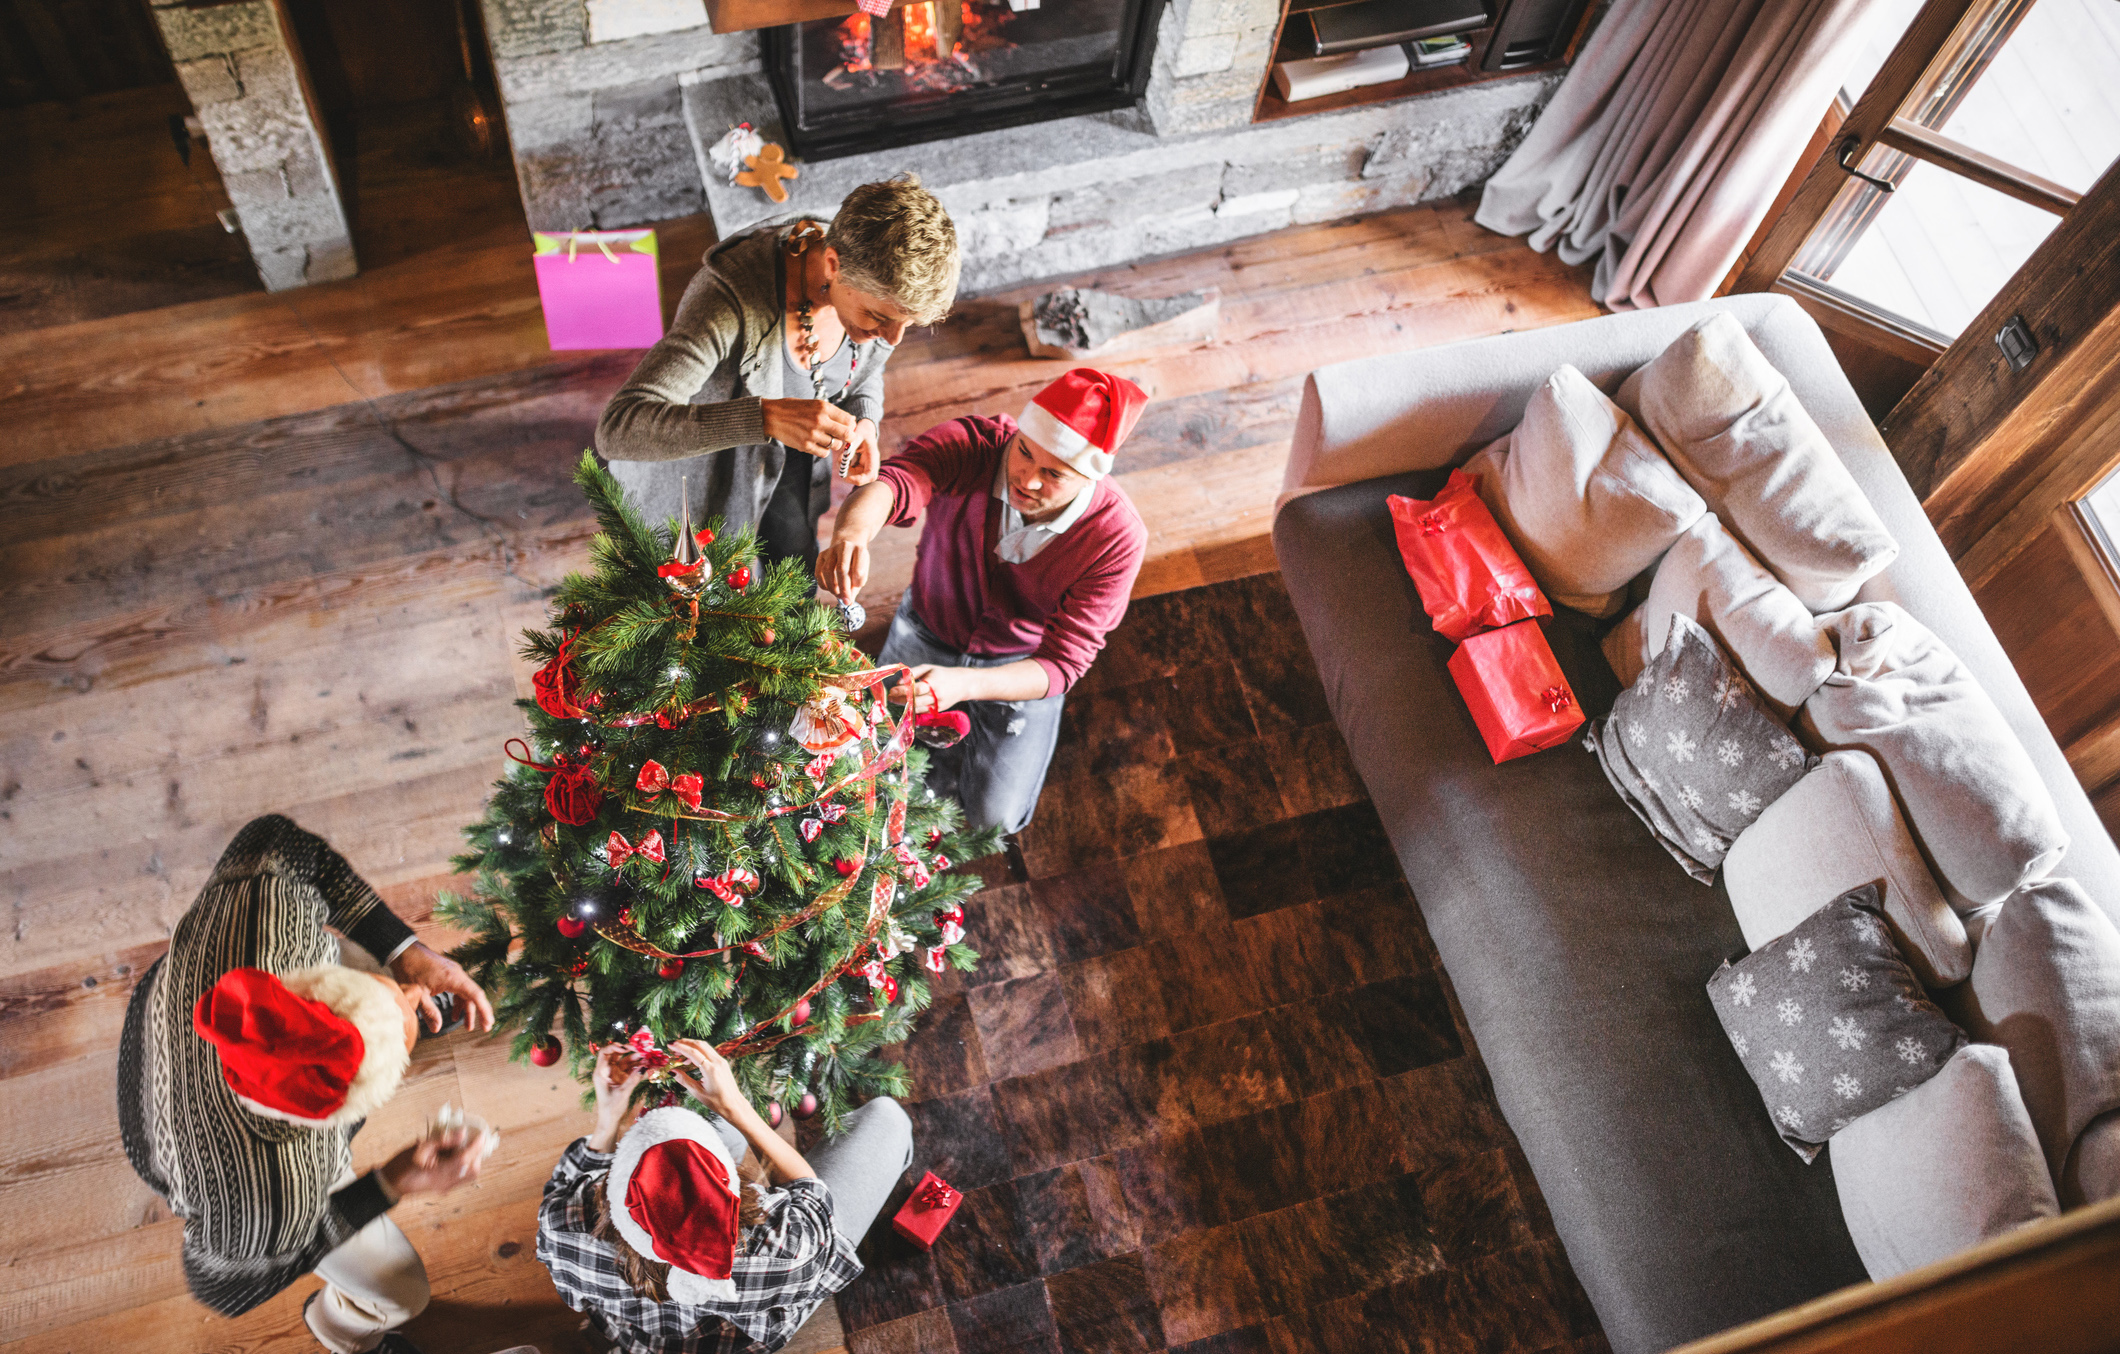 Dealing With Family Dynamics During the Holidays